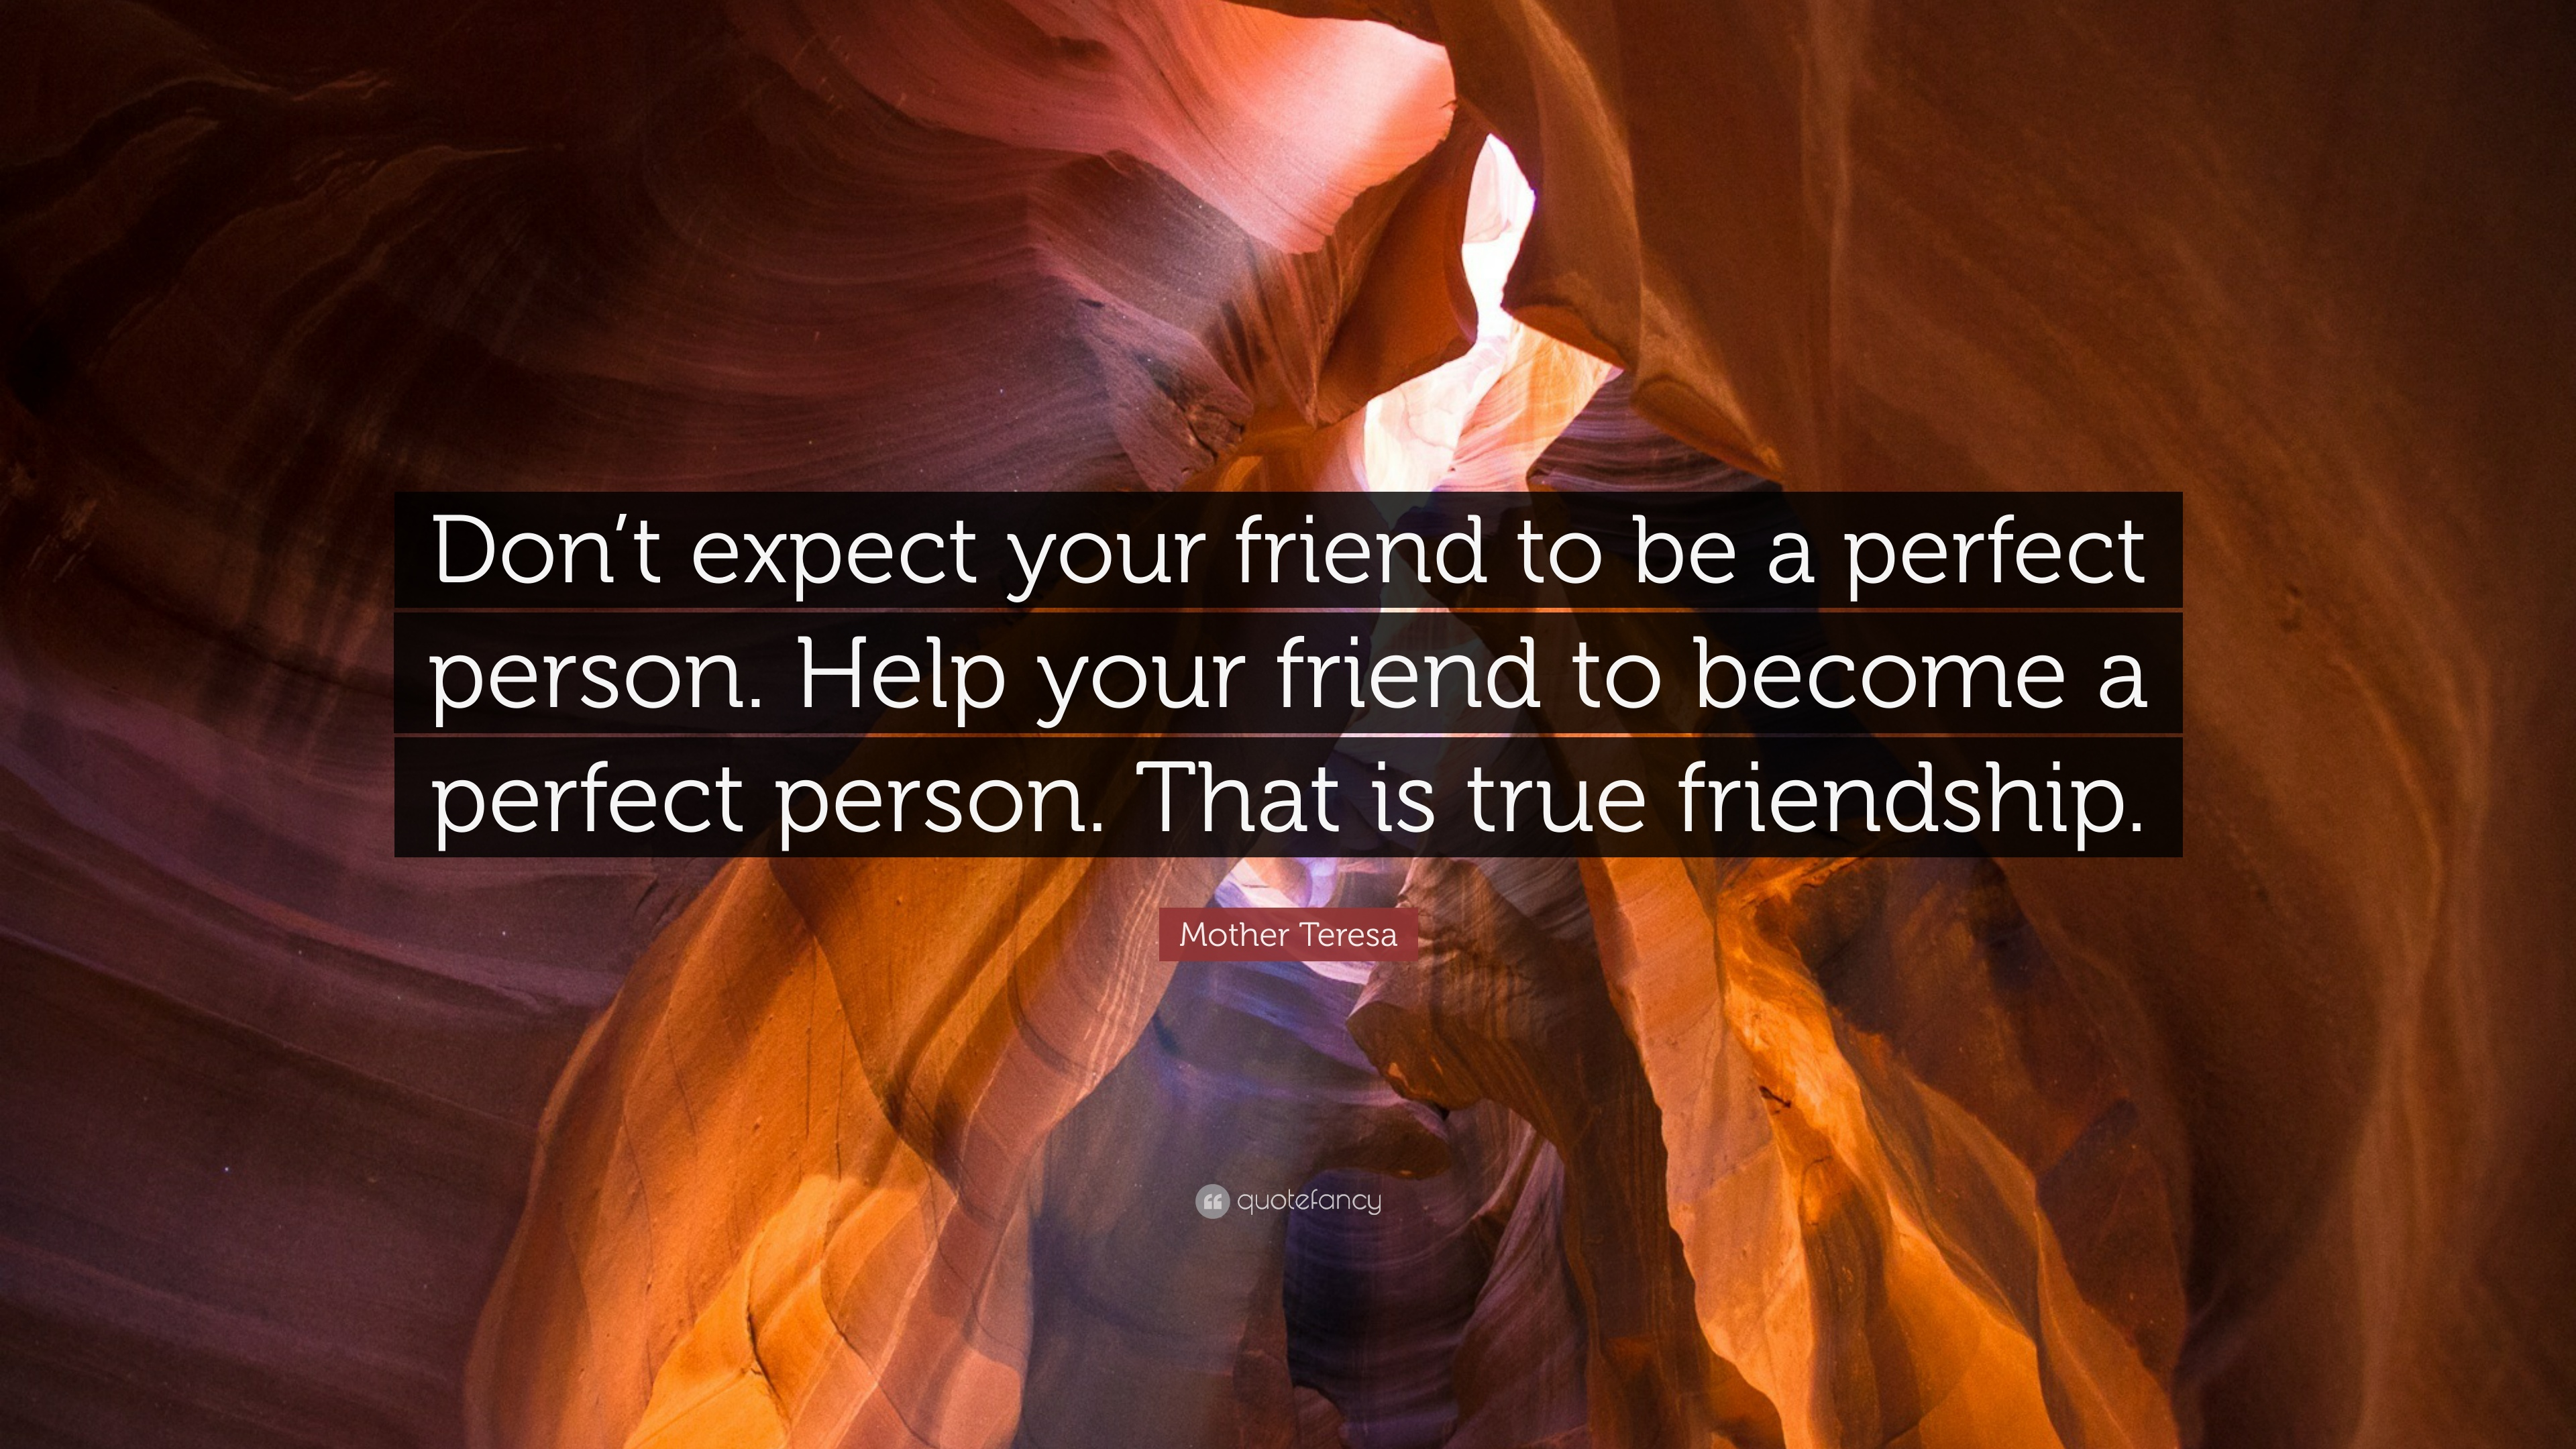 How to become a perfect person